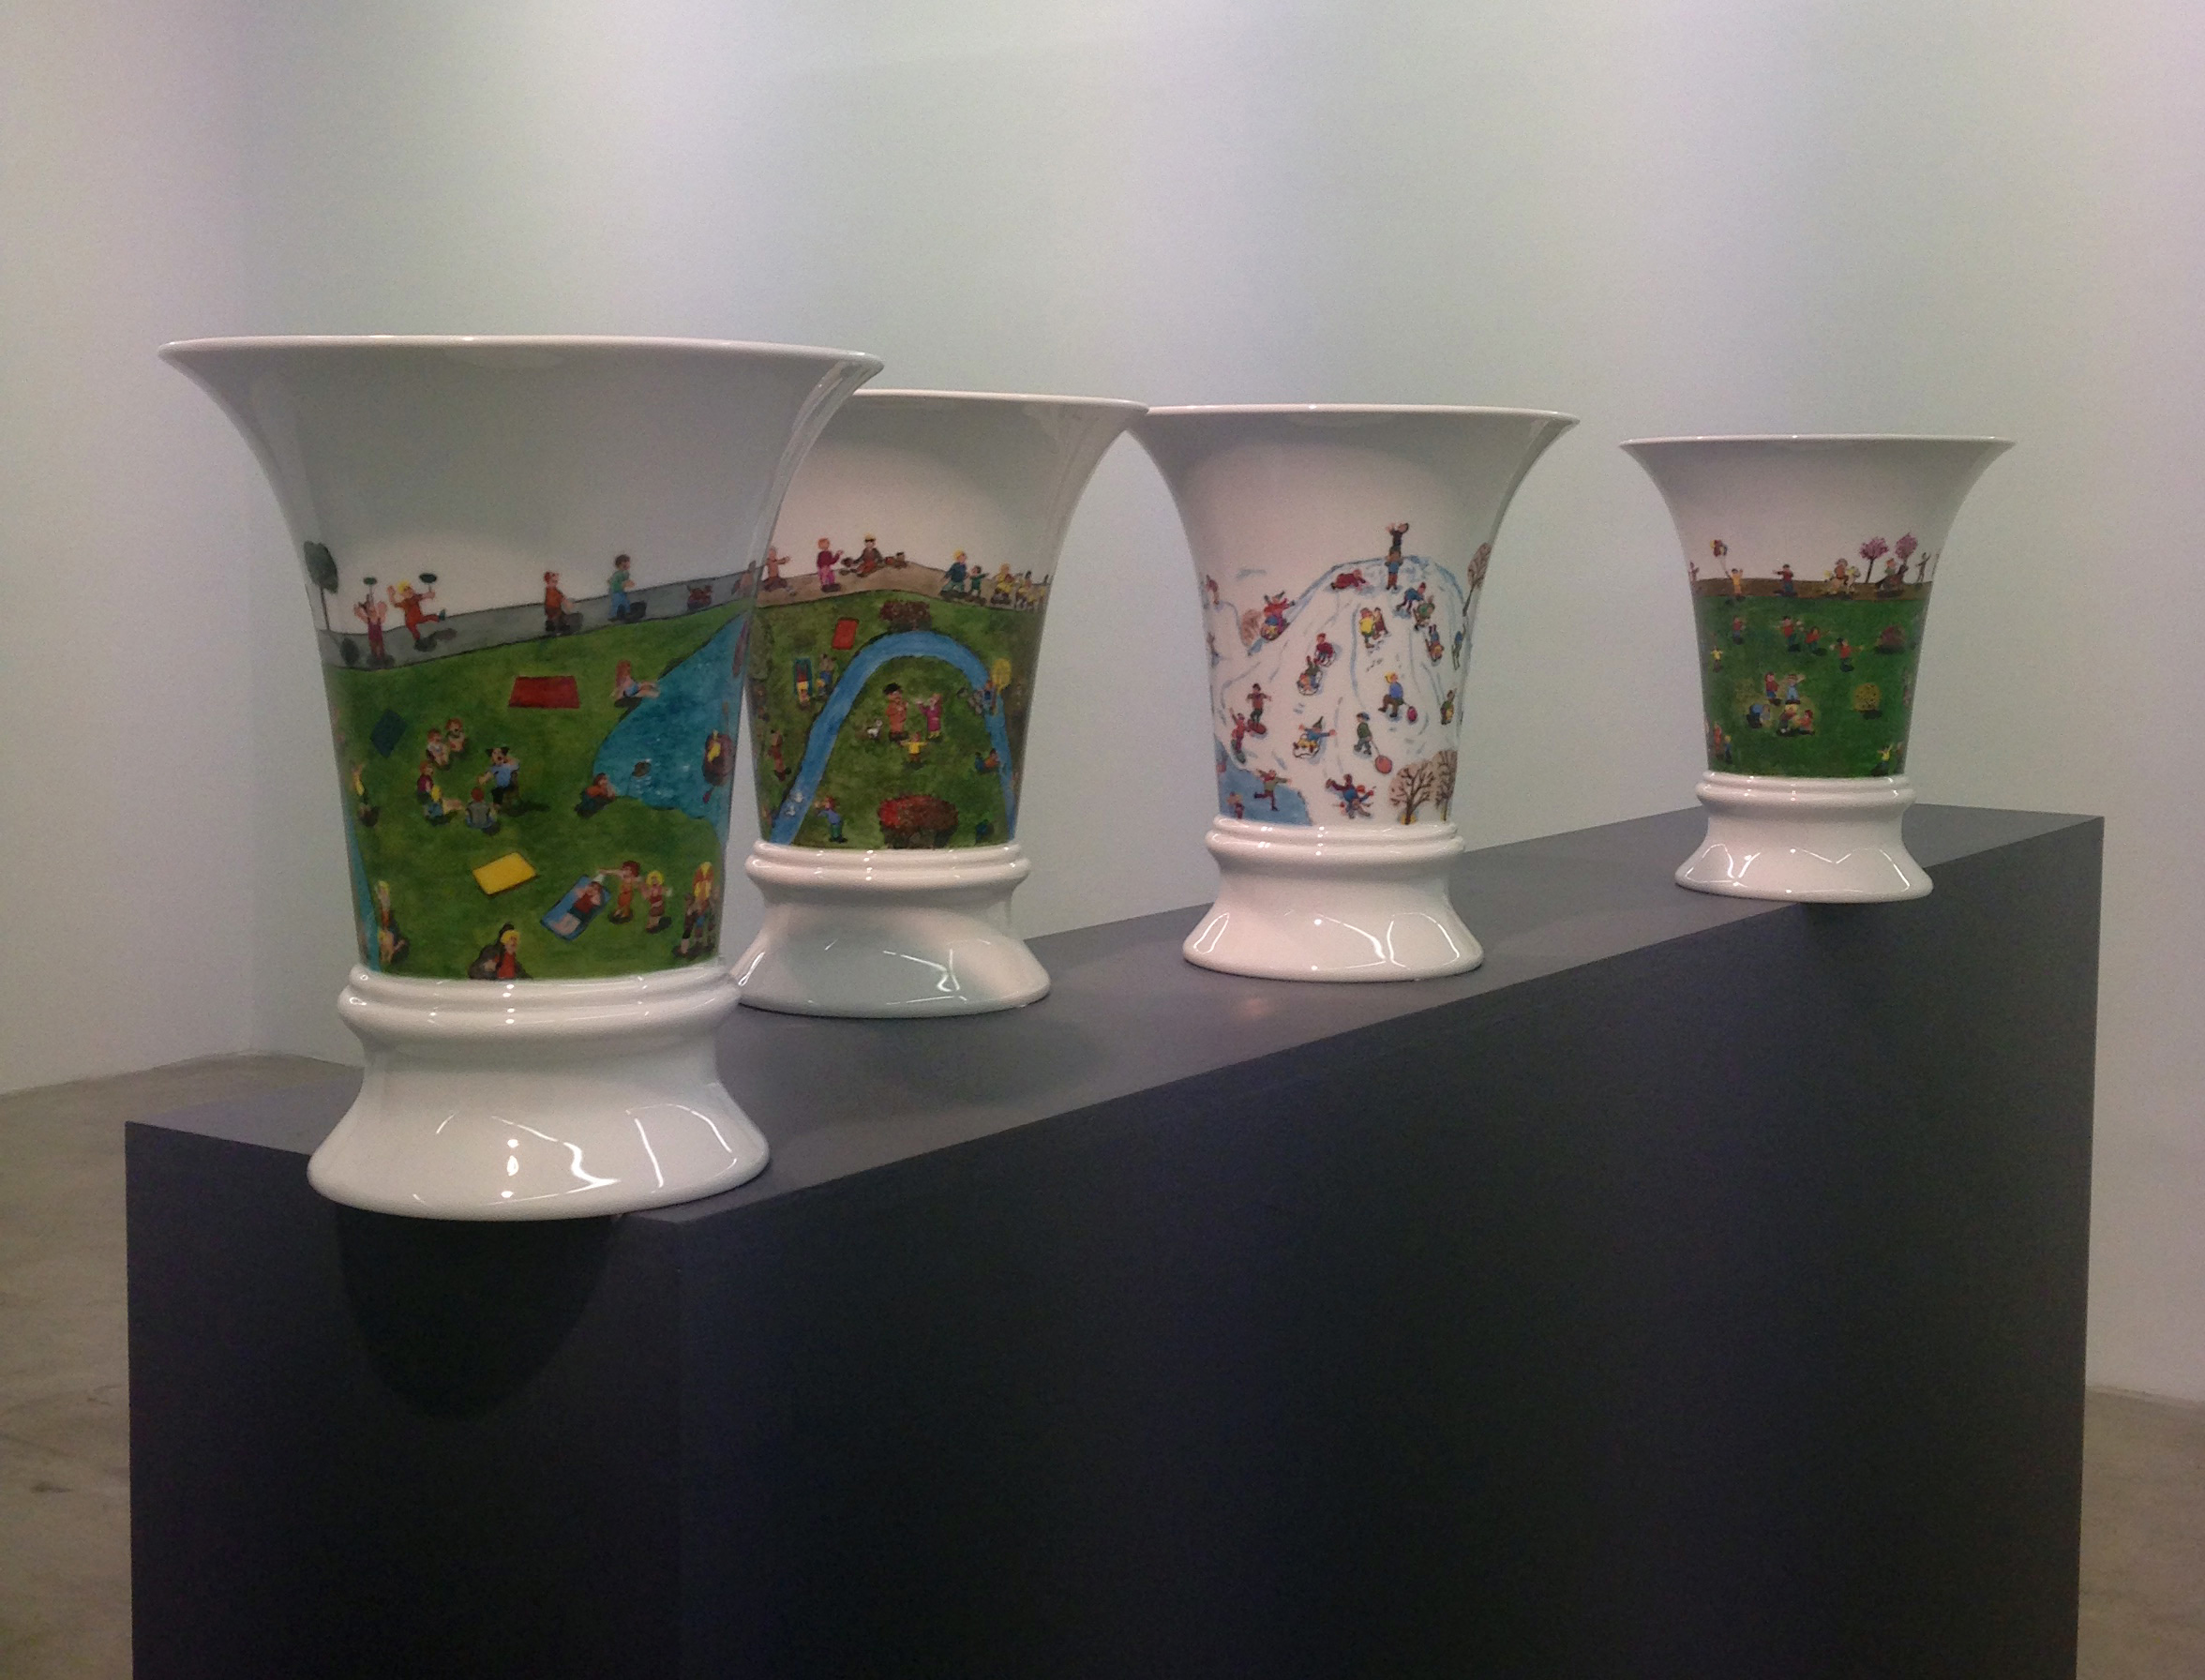 Height: 27 cm Installation With  4 Porcelain Vases